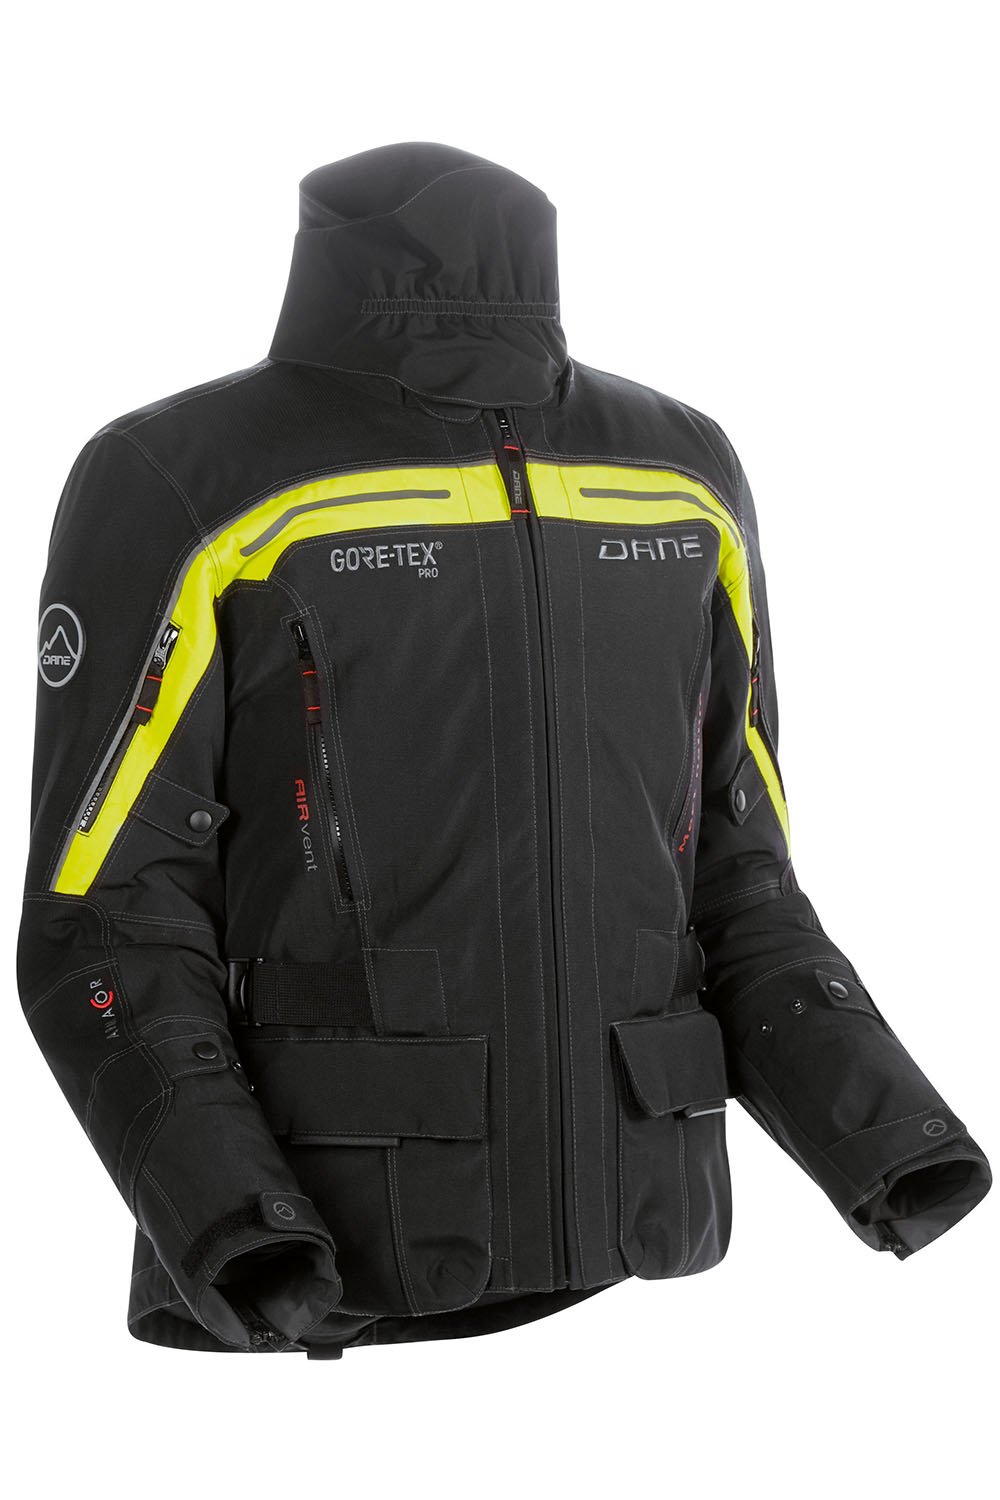 dane nimbus gore tex pro motorradjacke im motoport onlineshop. Black Bedroom Furniture Sets. Home Design Ideas